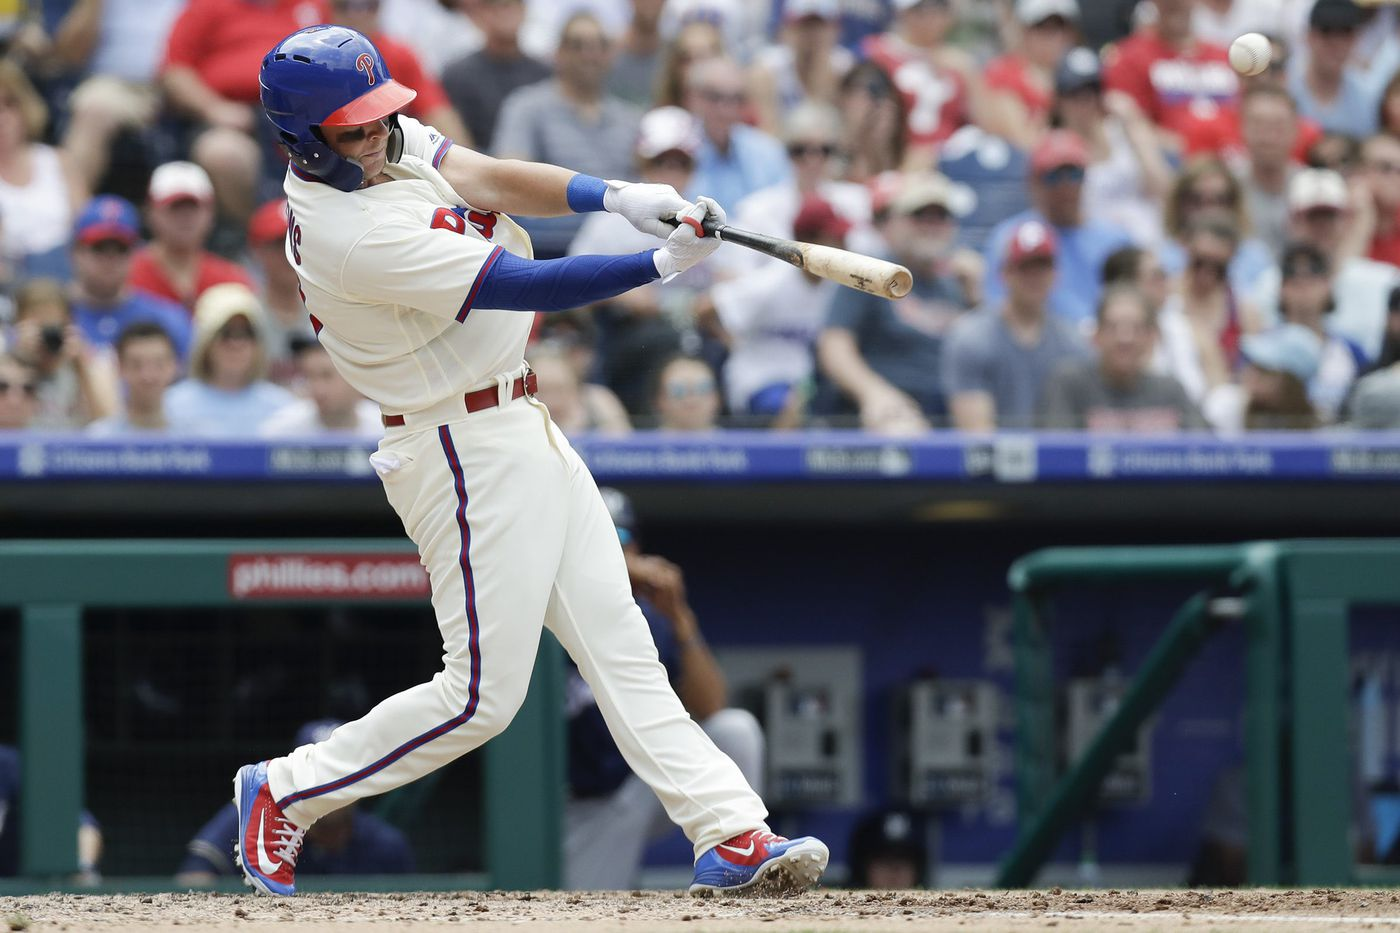 Rhys Hoskins, equipped with new helmet, homers for Phillies in return from disabled list